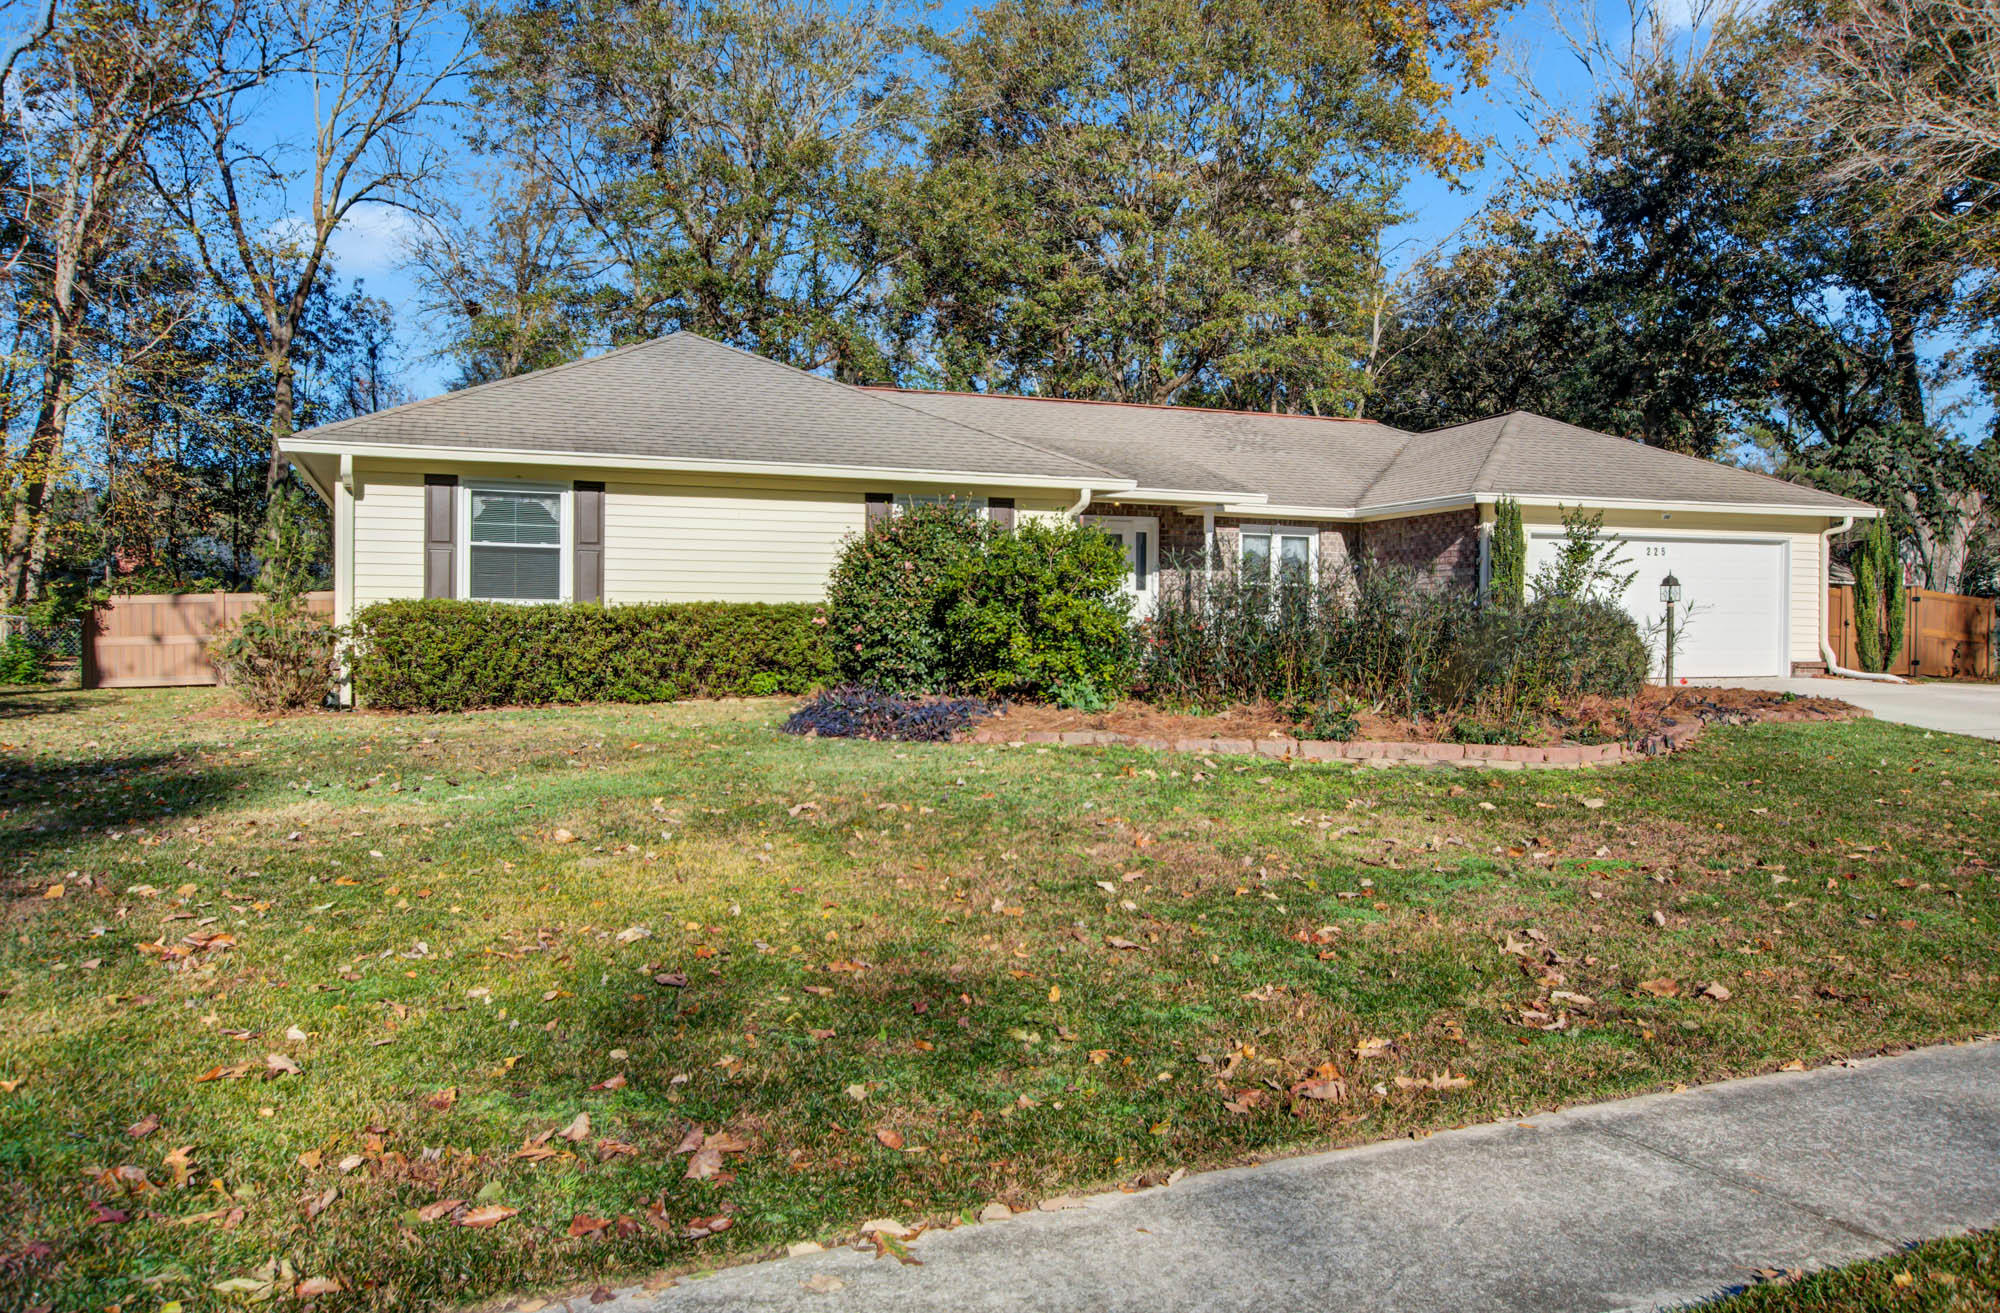 225 Savannah Round Summerville, Sc 29485